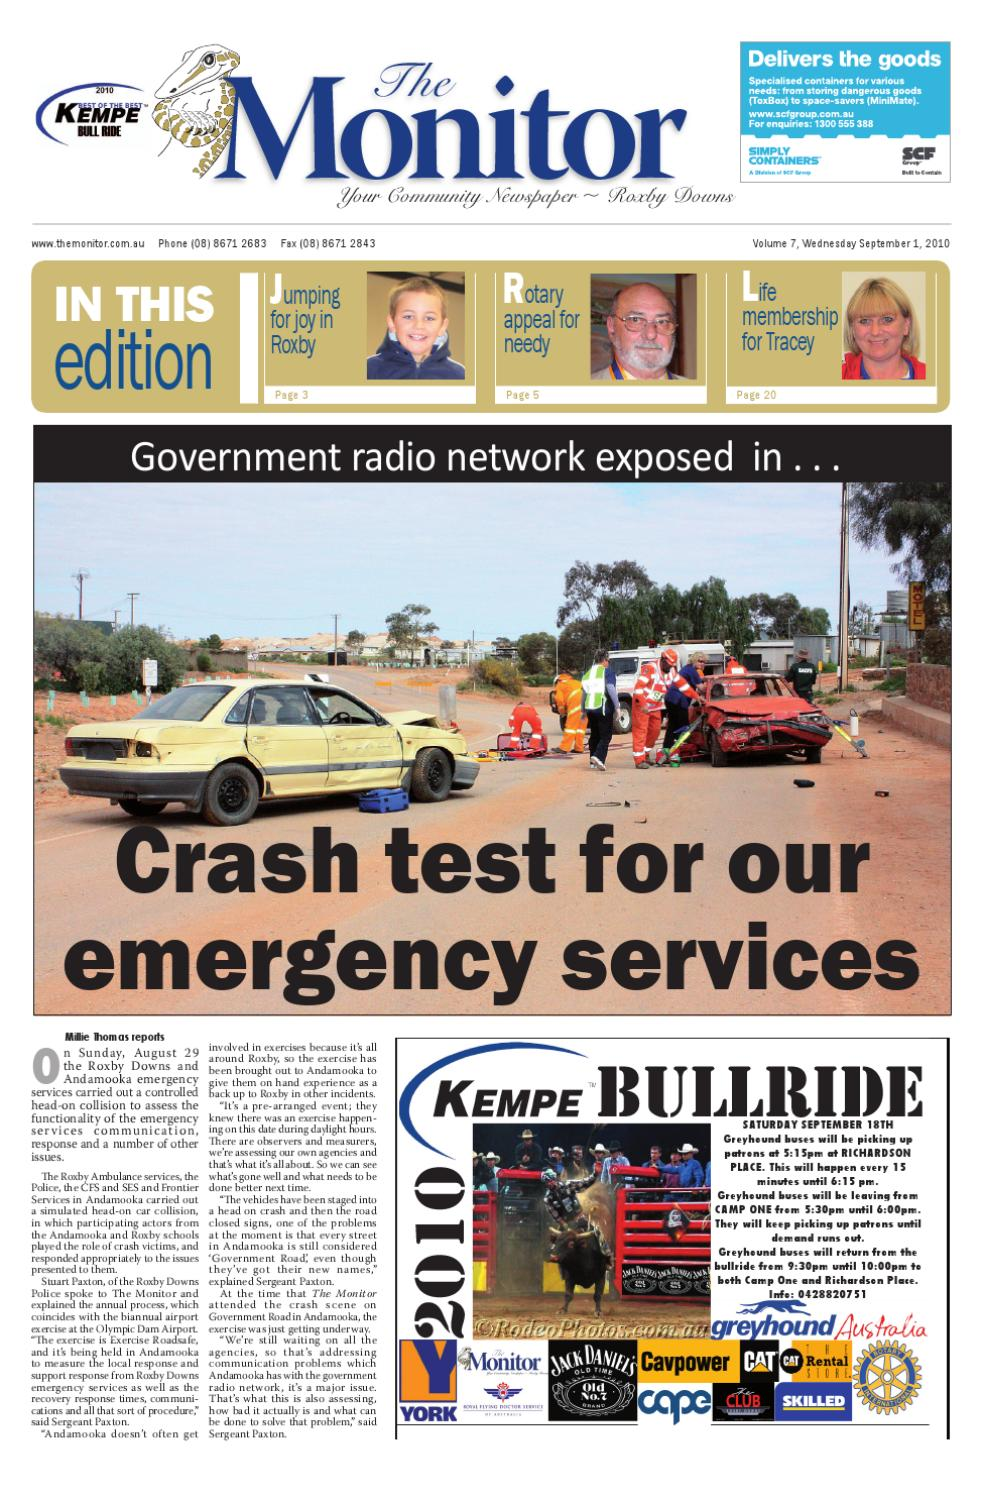 The Monitor Newspaper For 1st September 2010 By The Monitor Inc Issuu